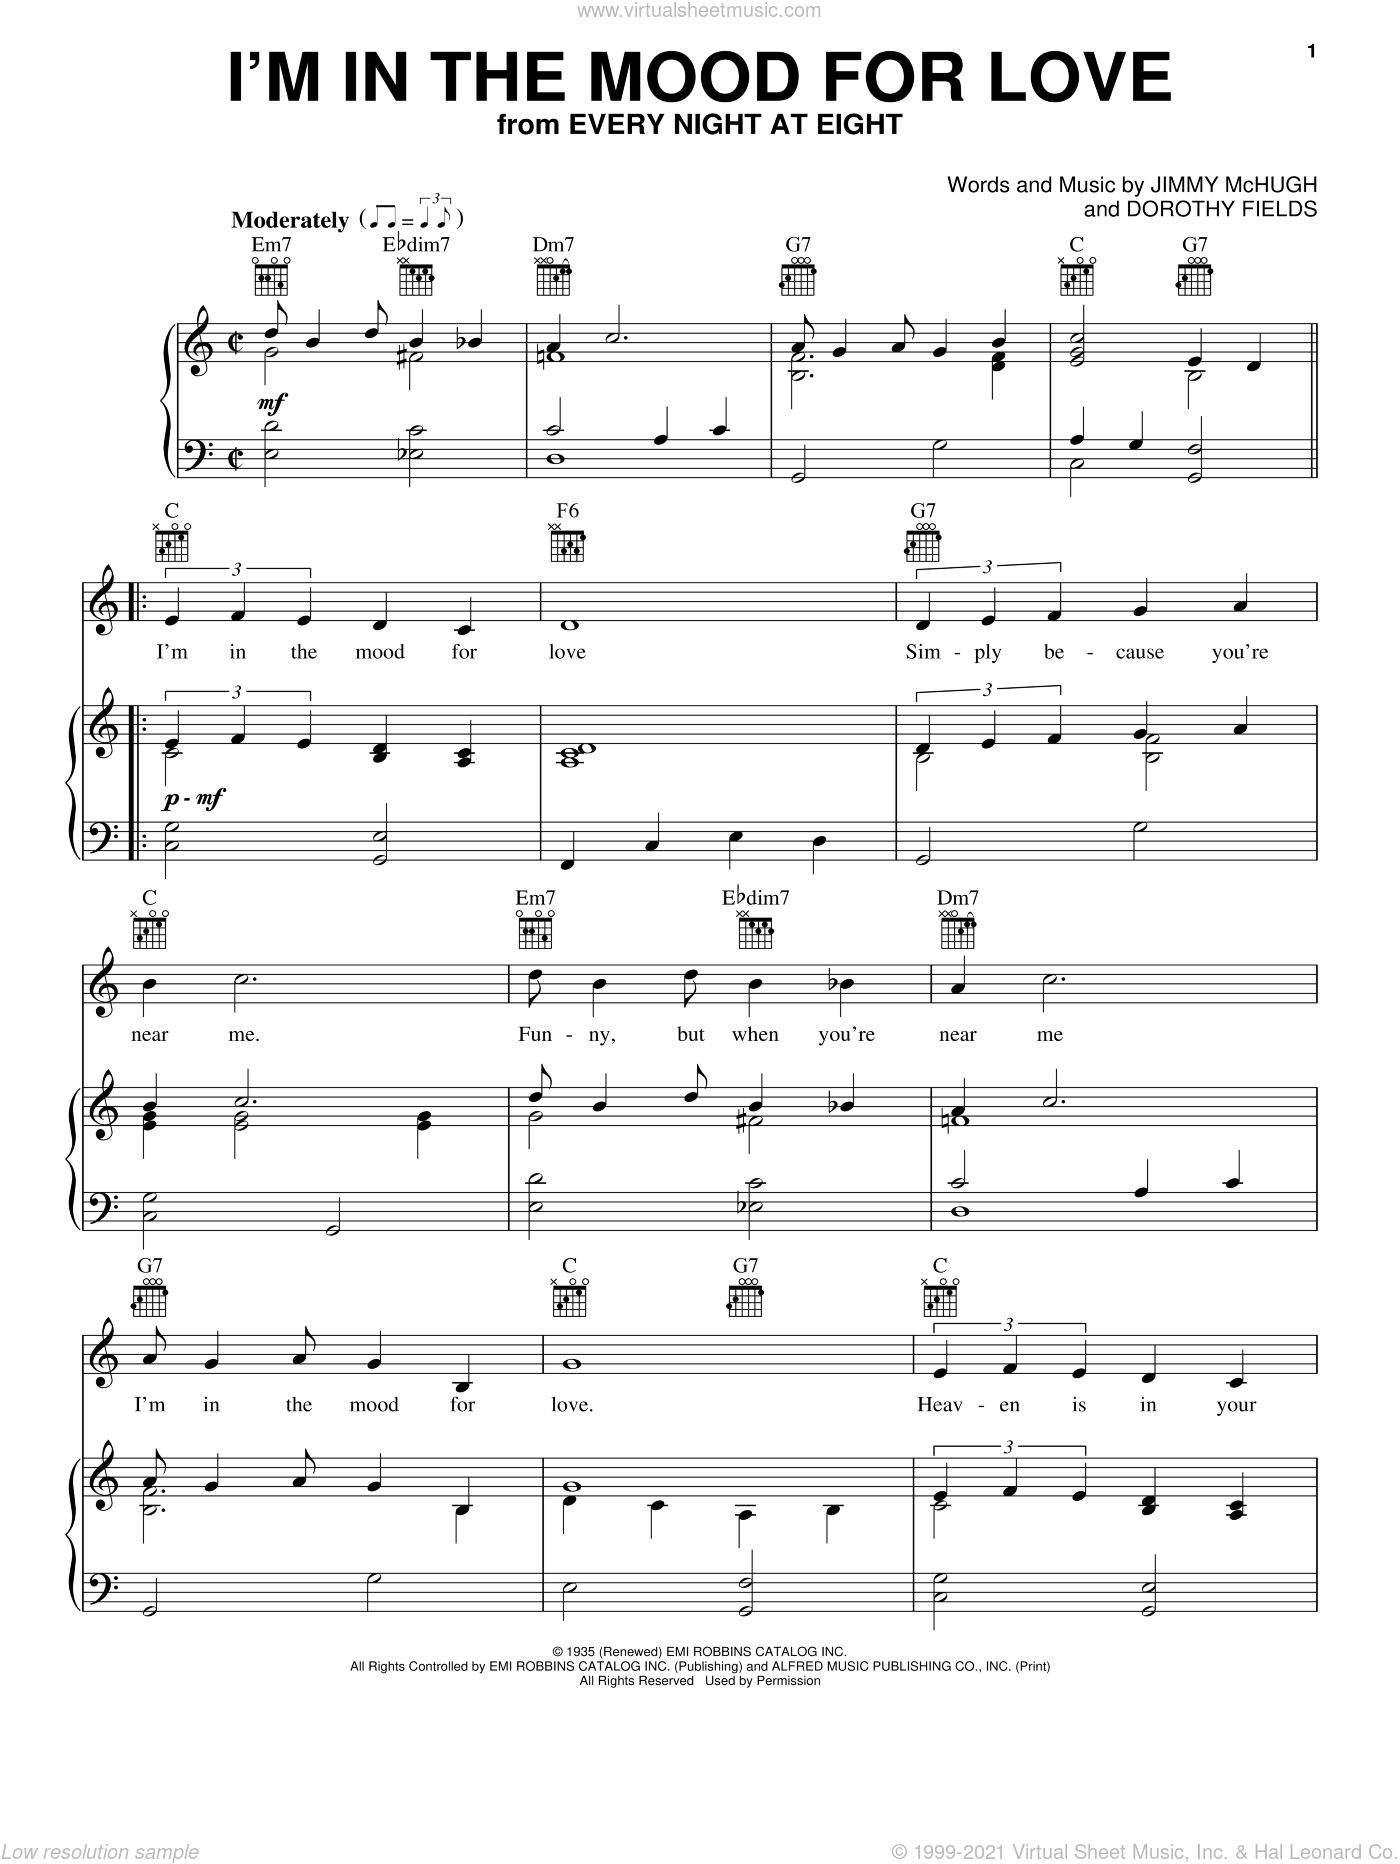 I'm In The Mood For Love sheet music for voice, piano or guitar by Jimmy McHugh